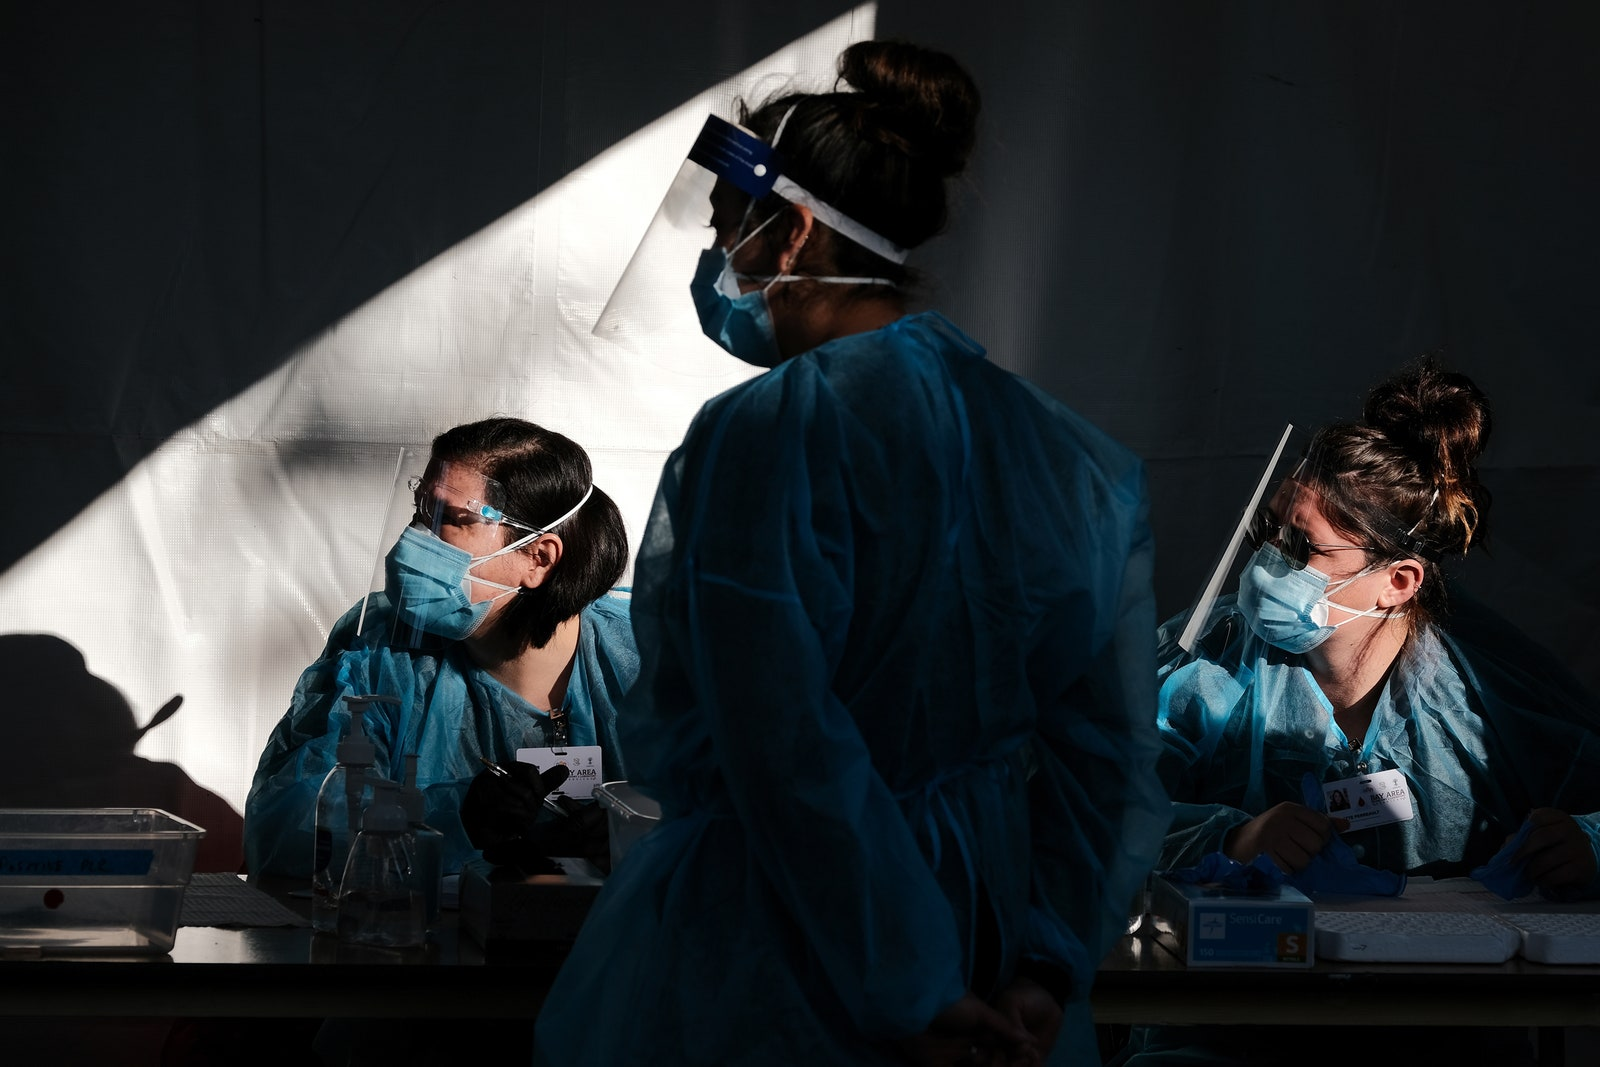 Three healthcare workers in PPE.